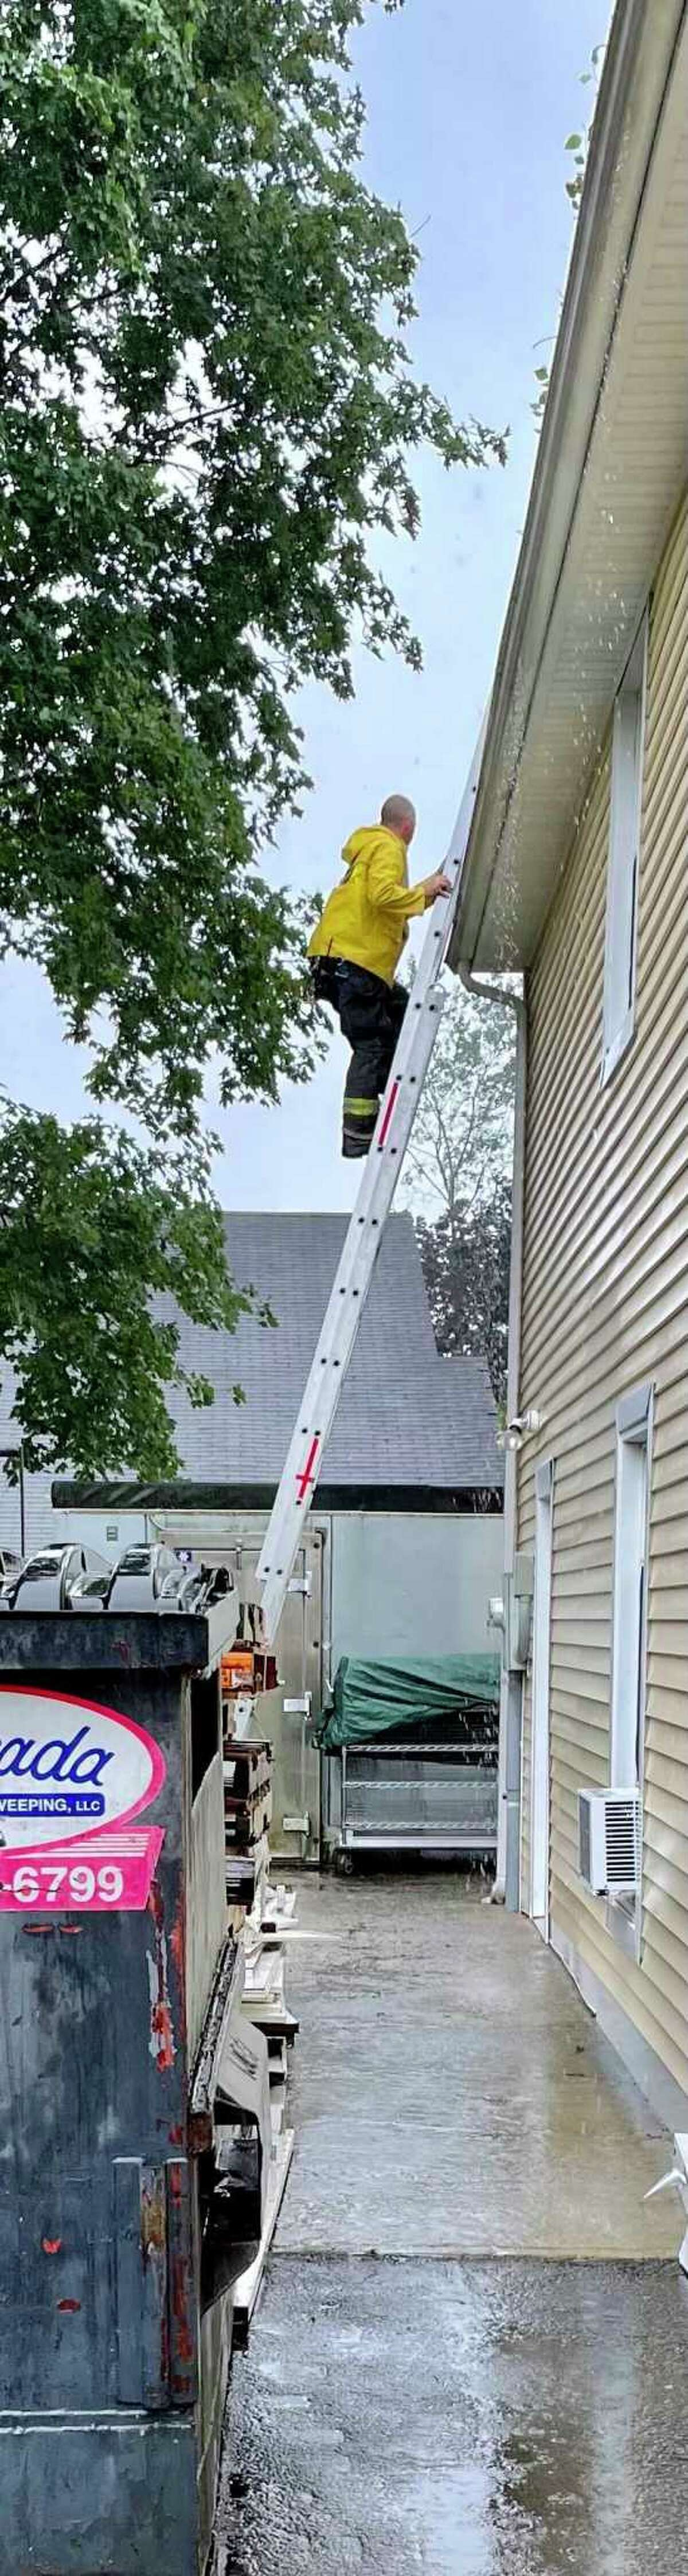 A member of the Torrington Fire Department climbs a ladder to clear a clogged gutter at Friendly Hands Food Bank Monday. Staff members discovered that the clogged gutter had caused flooding inside the building on King Street.